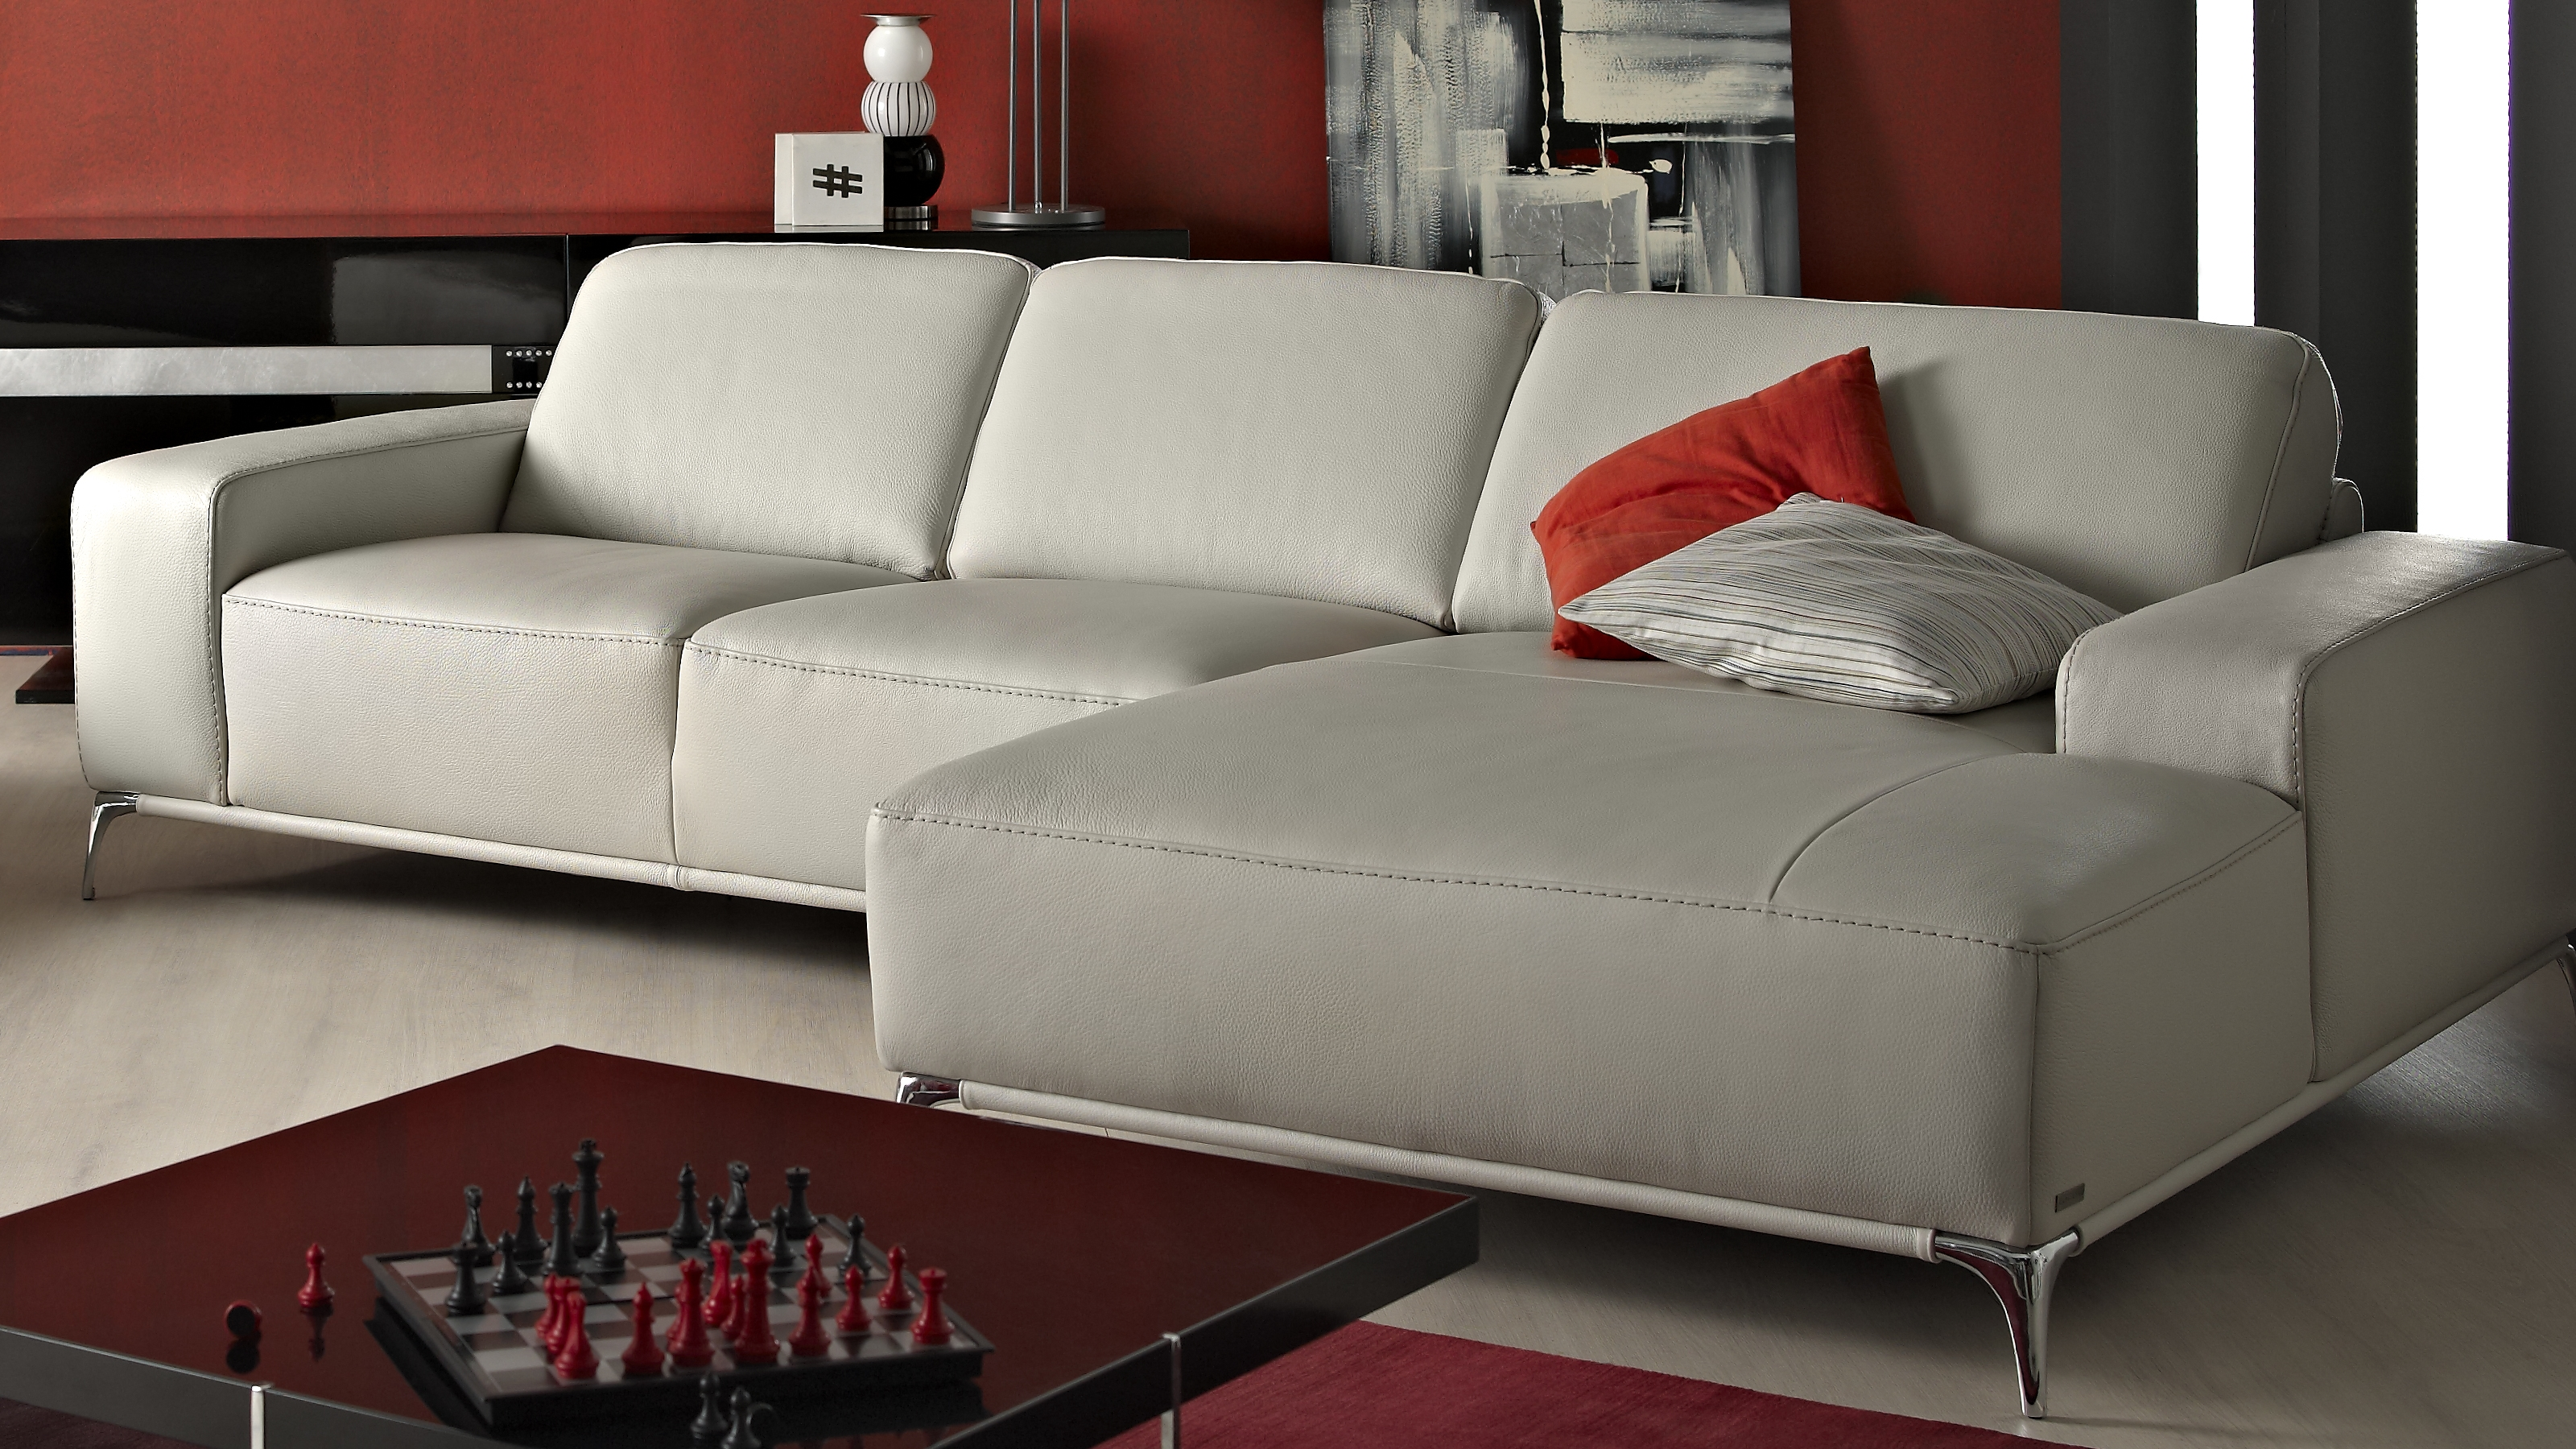 Saporini artemi full leather 2 5 seater sofa with chaise for 2 5 seater chaise